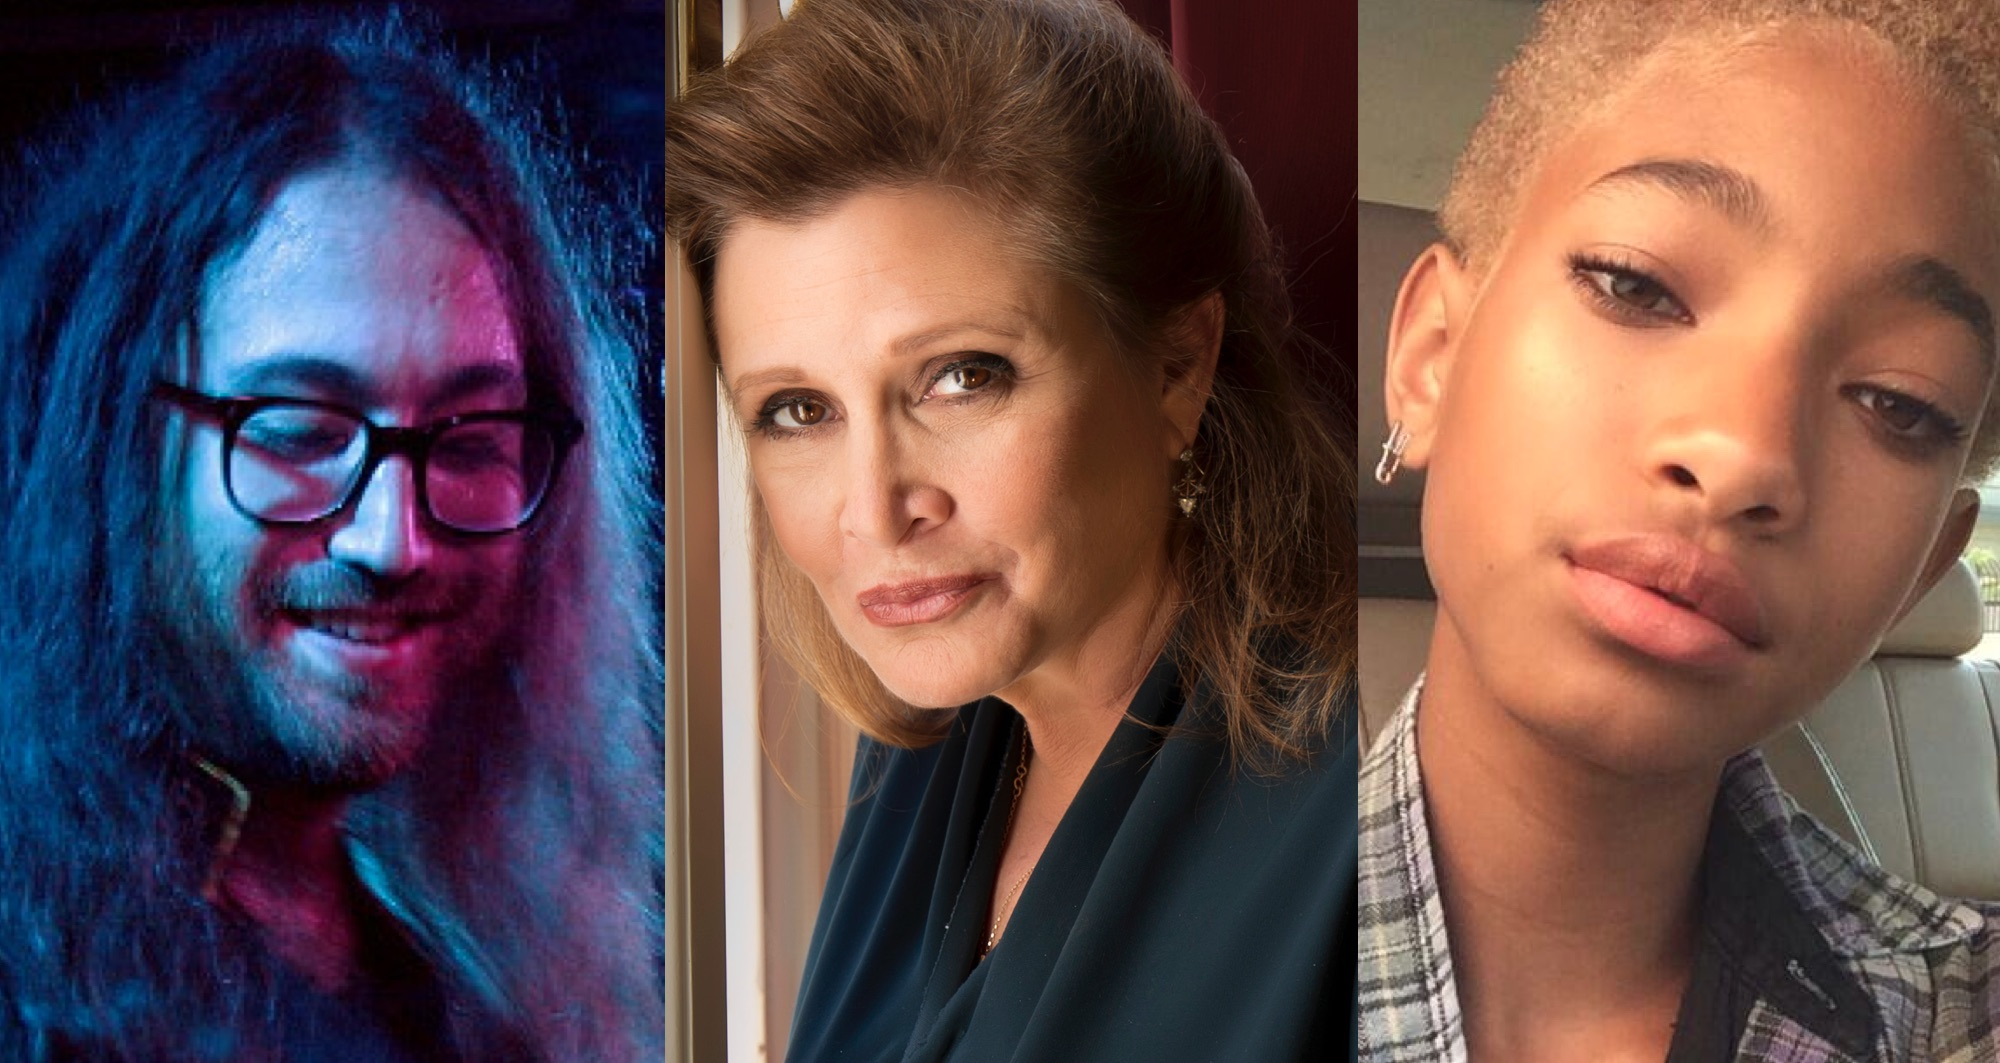 Listen to a Powerful Collaboration Between Sean Ono Lennon, Carrie Fisher and Willow Smith